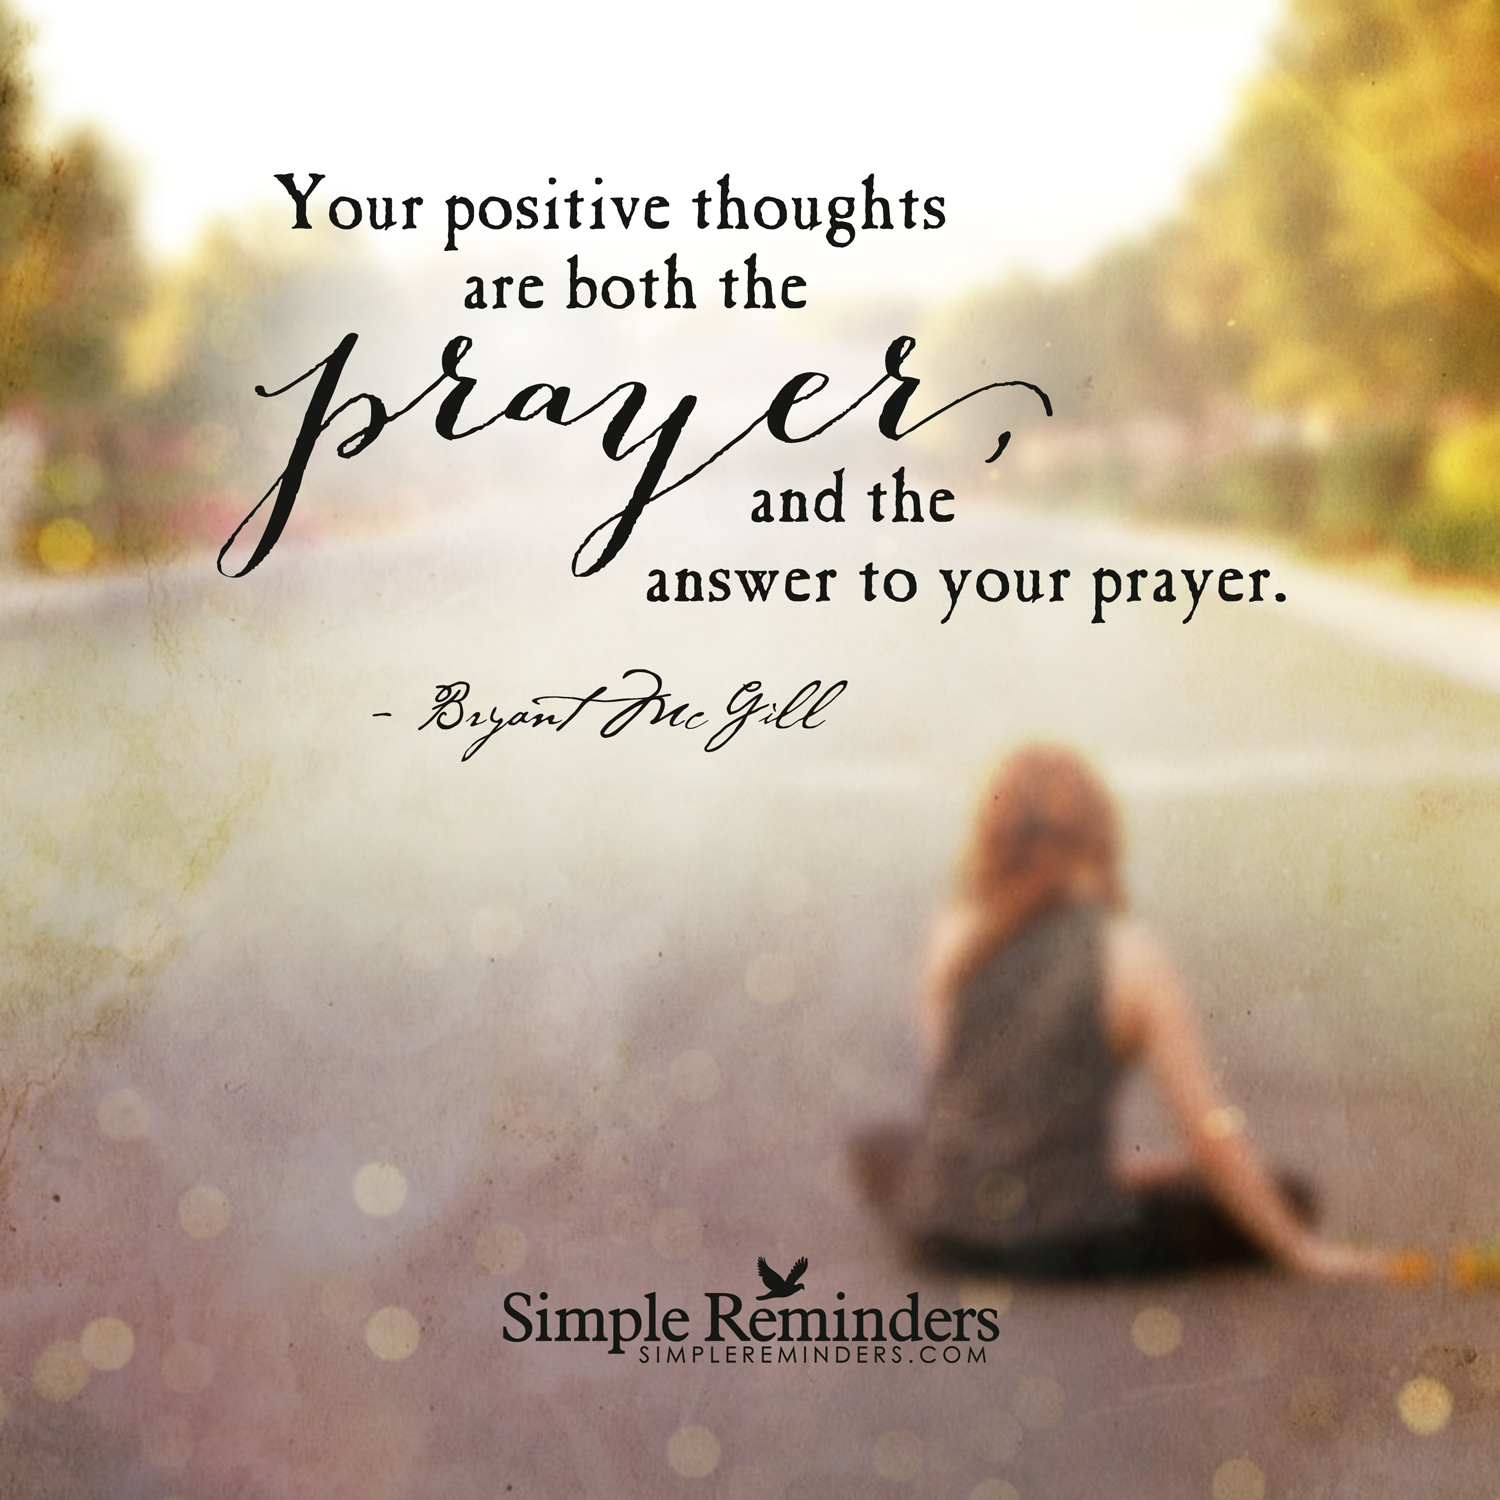 bryant-mcgill-positive-thoughts-prayer-answer-2s5g